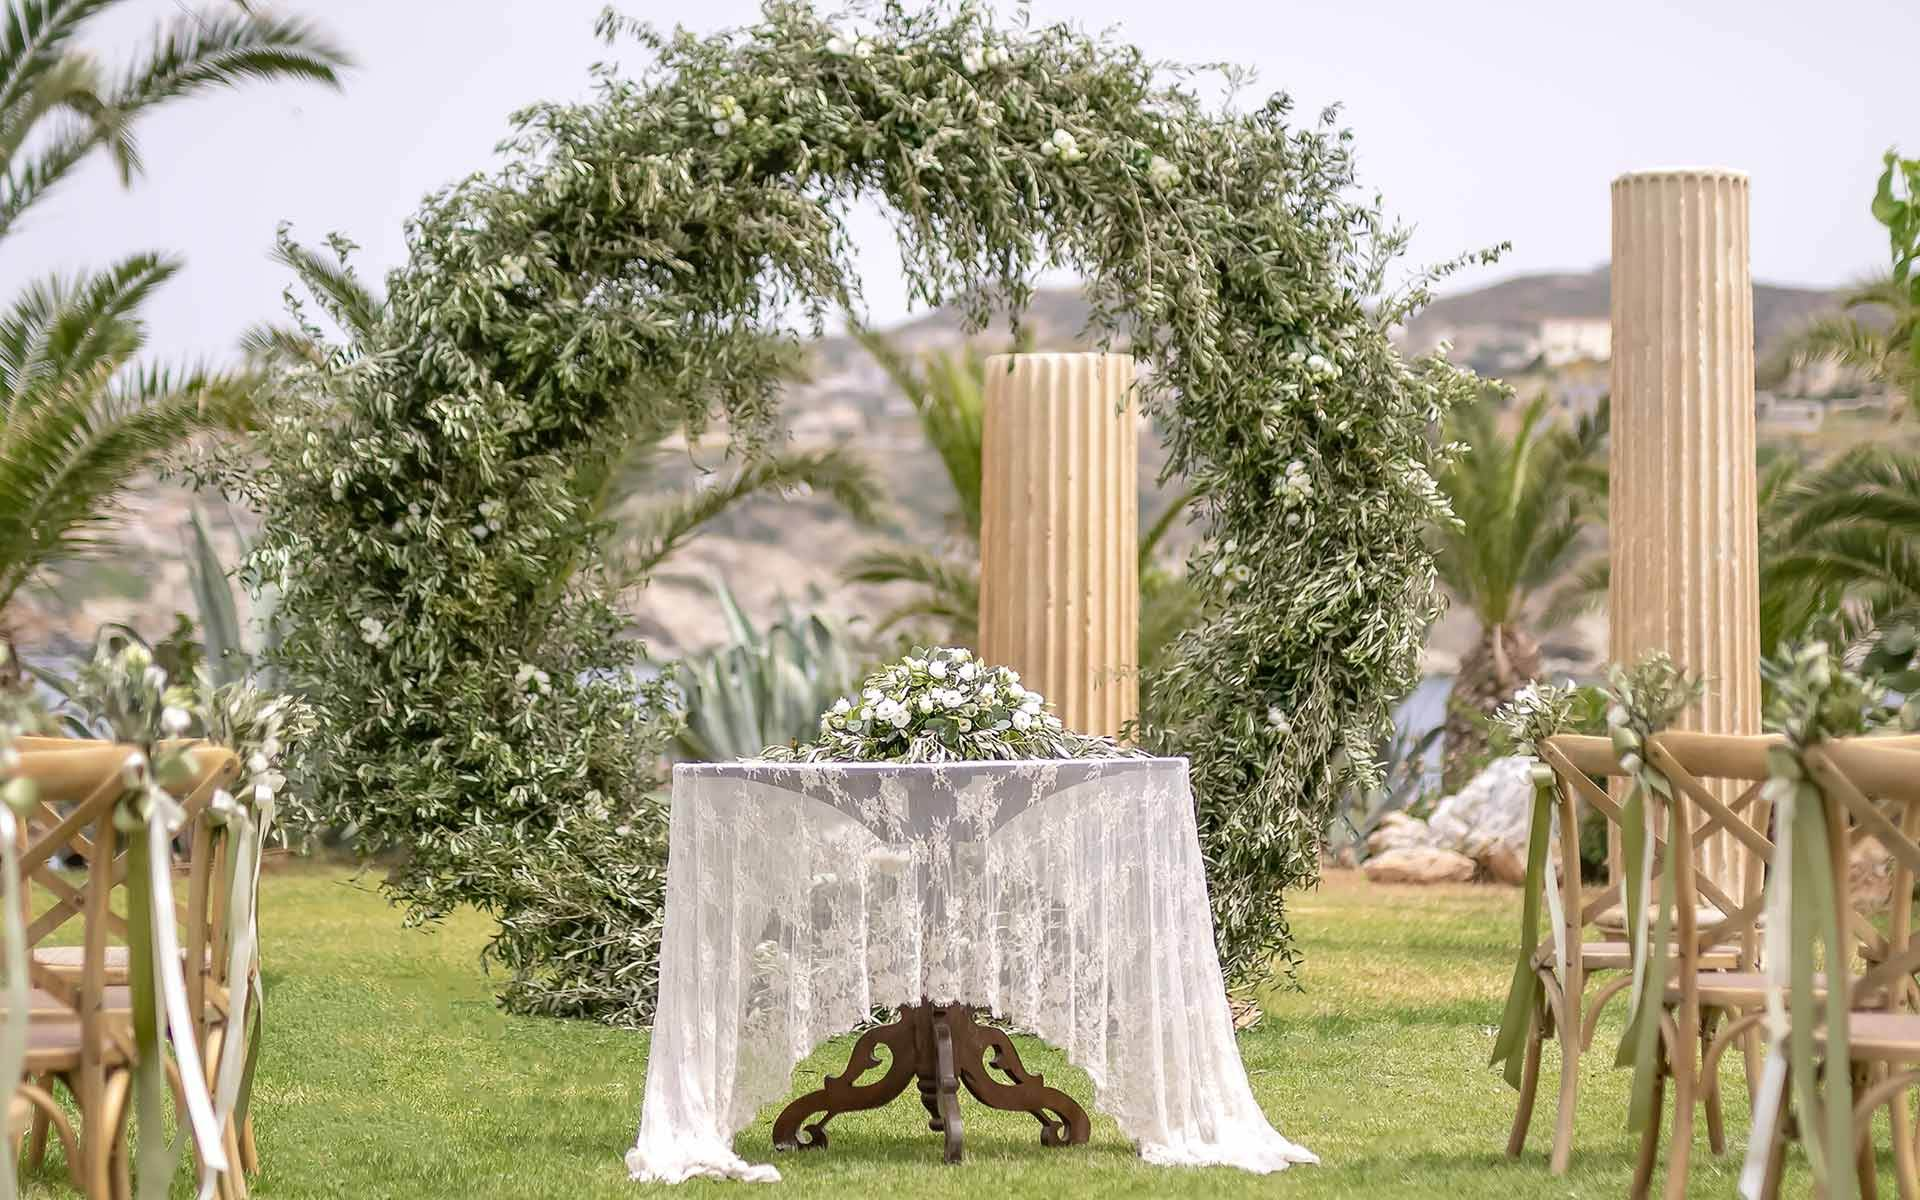 Grecian-inspired-wedding-Ceremony-in-Crete-by-Diamond-Events-Wedding-Event-planning-services